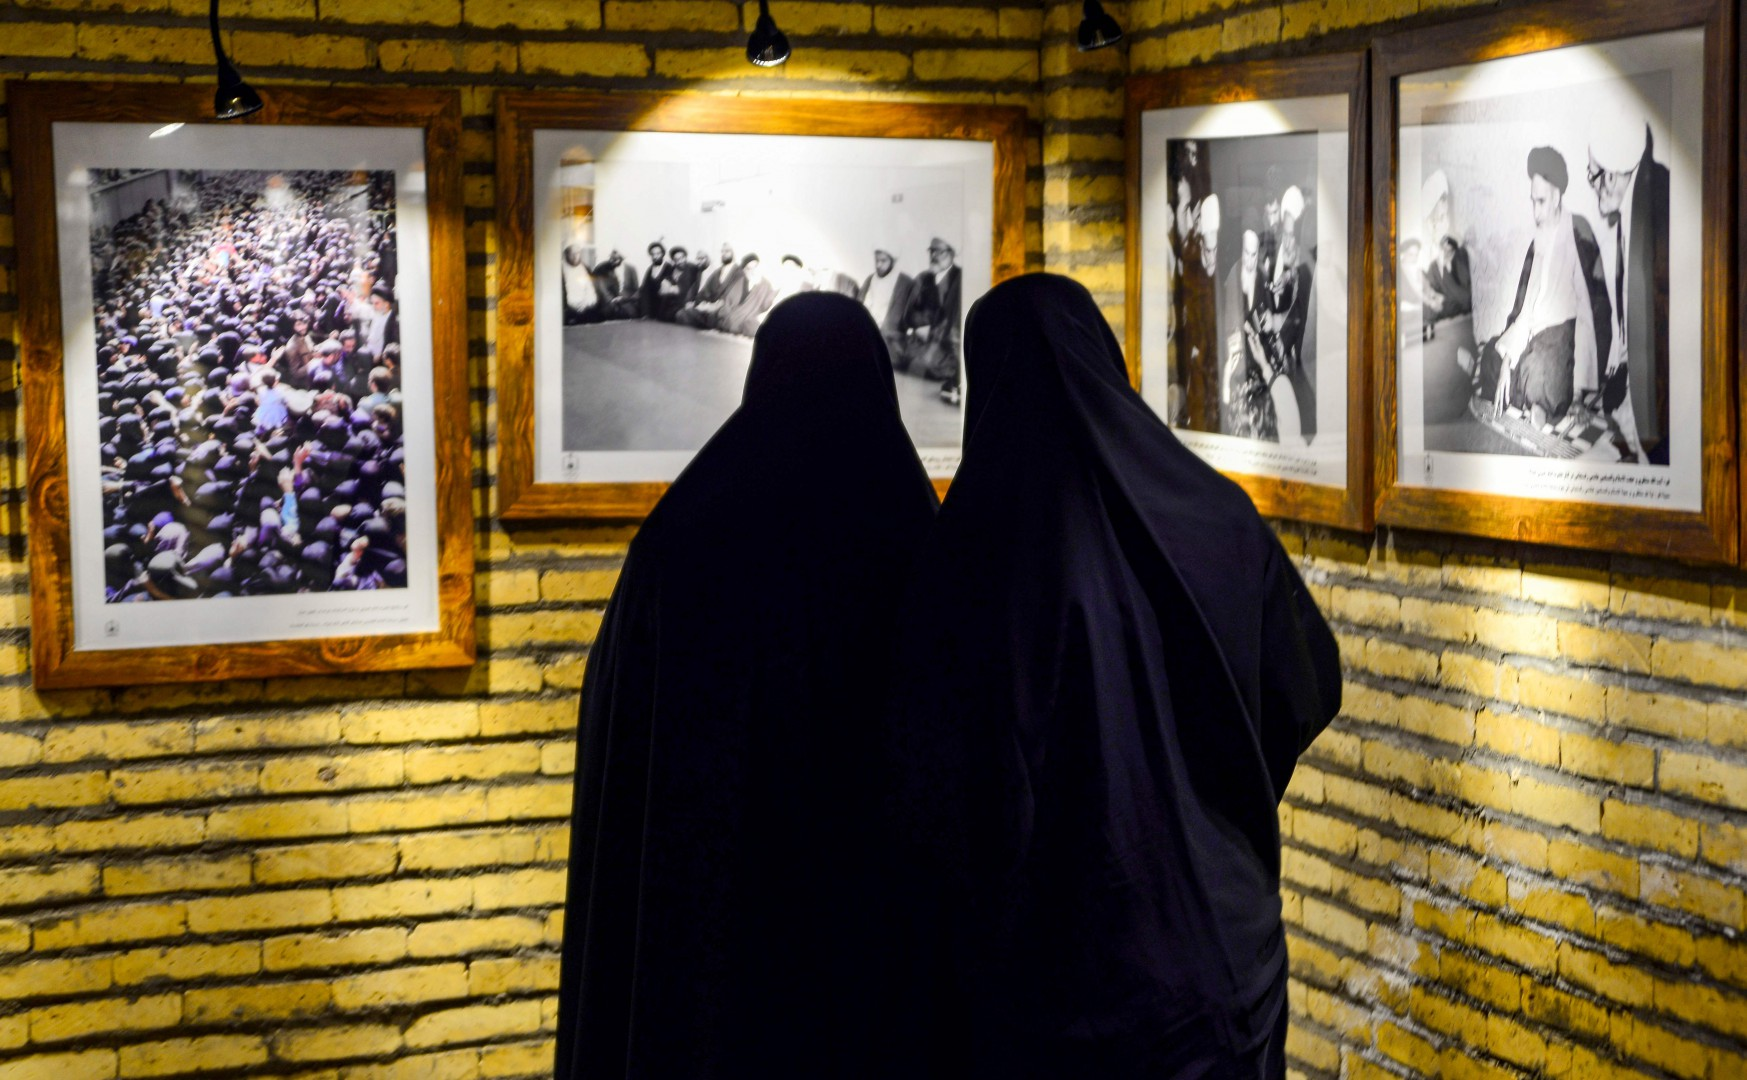 TOPSHOT - Iranian women look at portraits of Islamic Revolution leader Ayatollah Ruhollah Khomeini, as they visit the house where he lived during his 13-year-exile in Iraq, along al-Rasul street near the shrine of Imam Ali in the central holy city of Najaf on February 13, 2019, while marking the 40th anniversary of the Islamic Revolution in Iran. (Photo by Haidar HAMDANI / AFP)